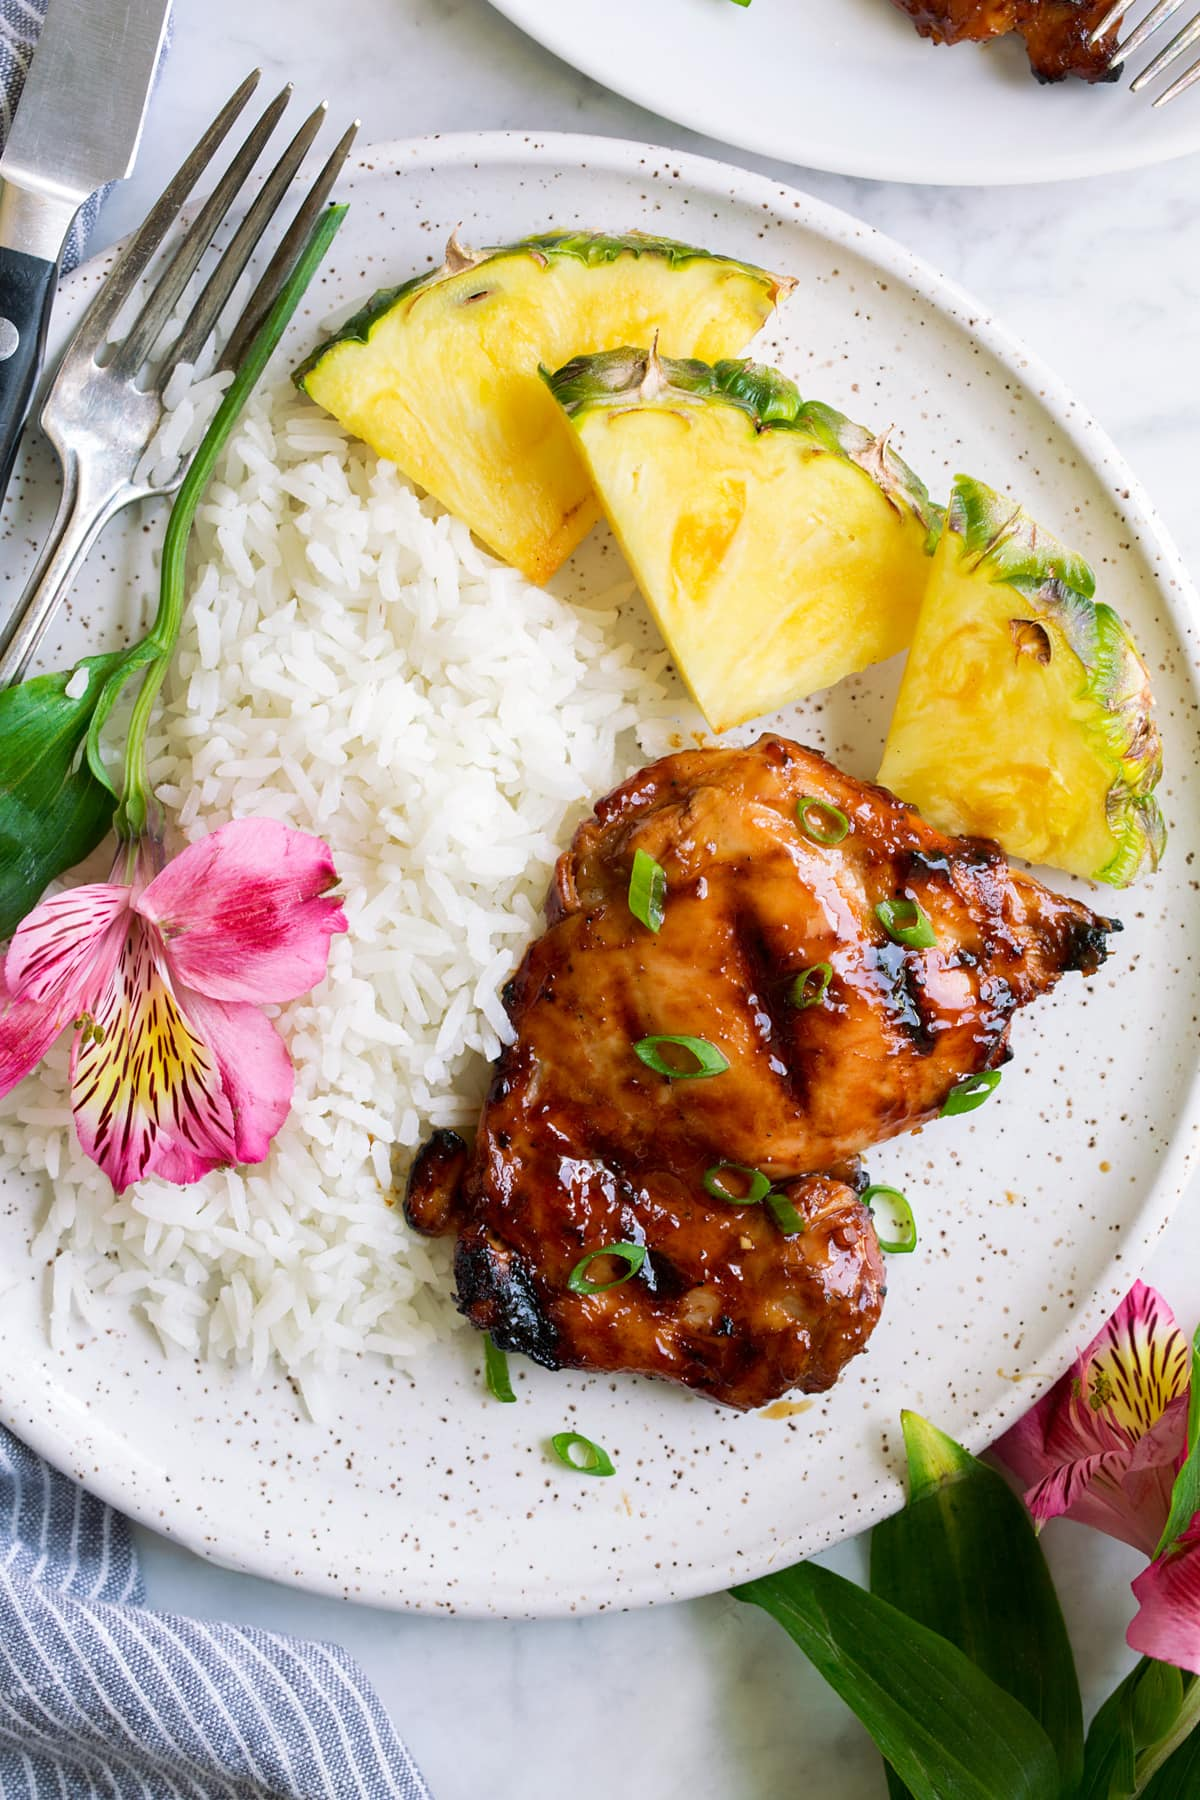 Plate with 1 huli huli chicken piece, pineapple, rice and a fresh flower. Shown overhead.